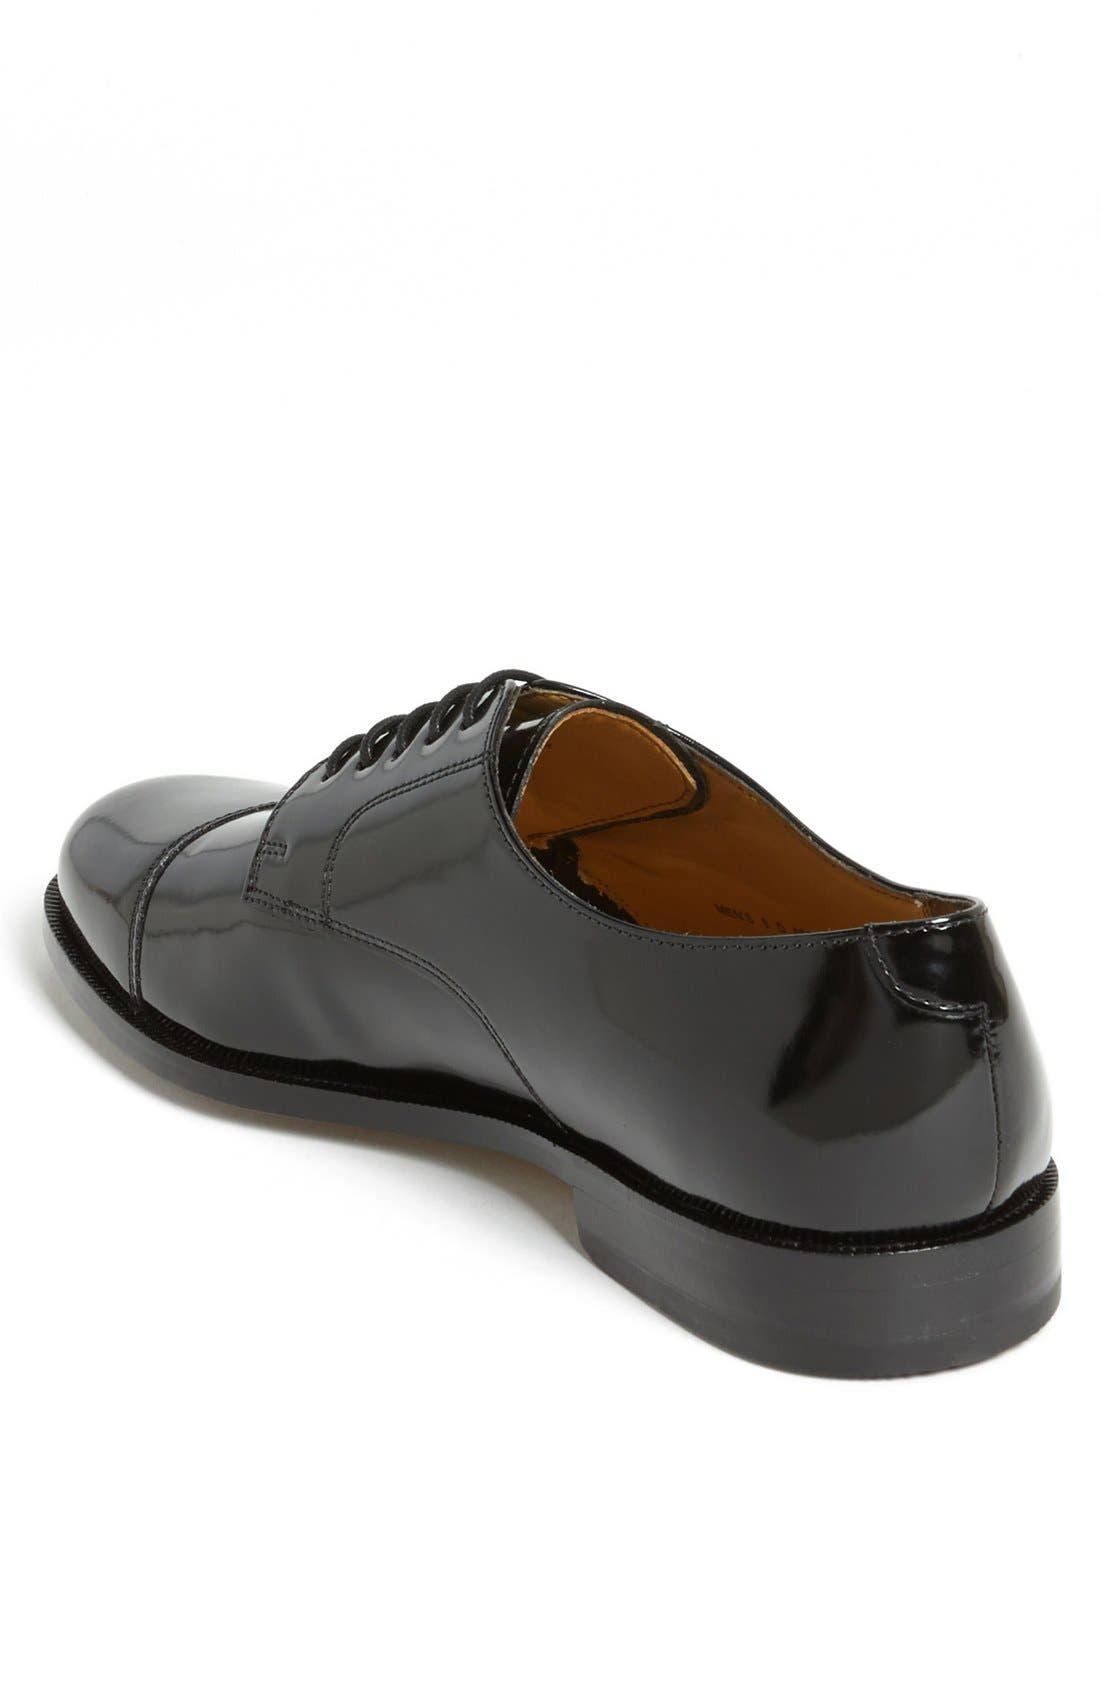 Alternate Image 2  - Cole Haan 'Caldwell' Derby (Online Only)   (Men)